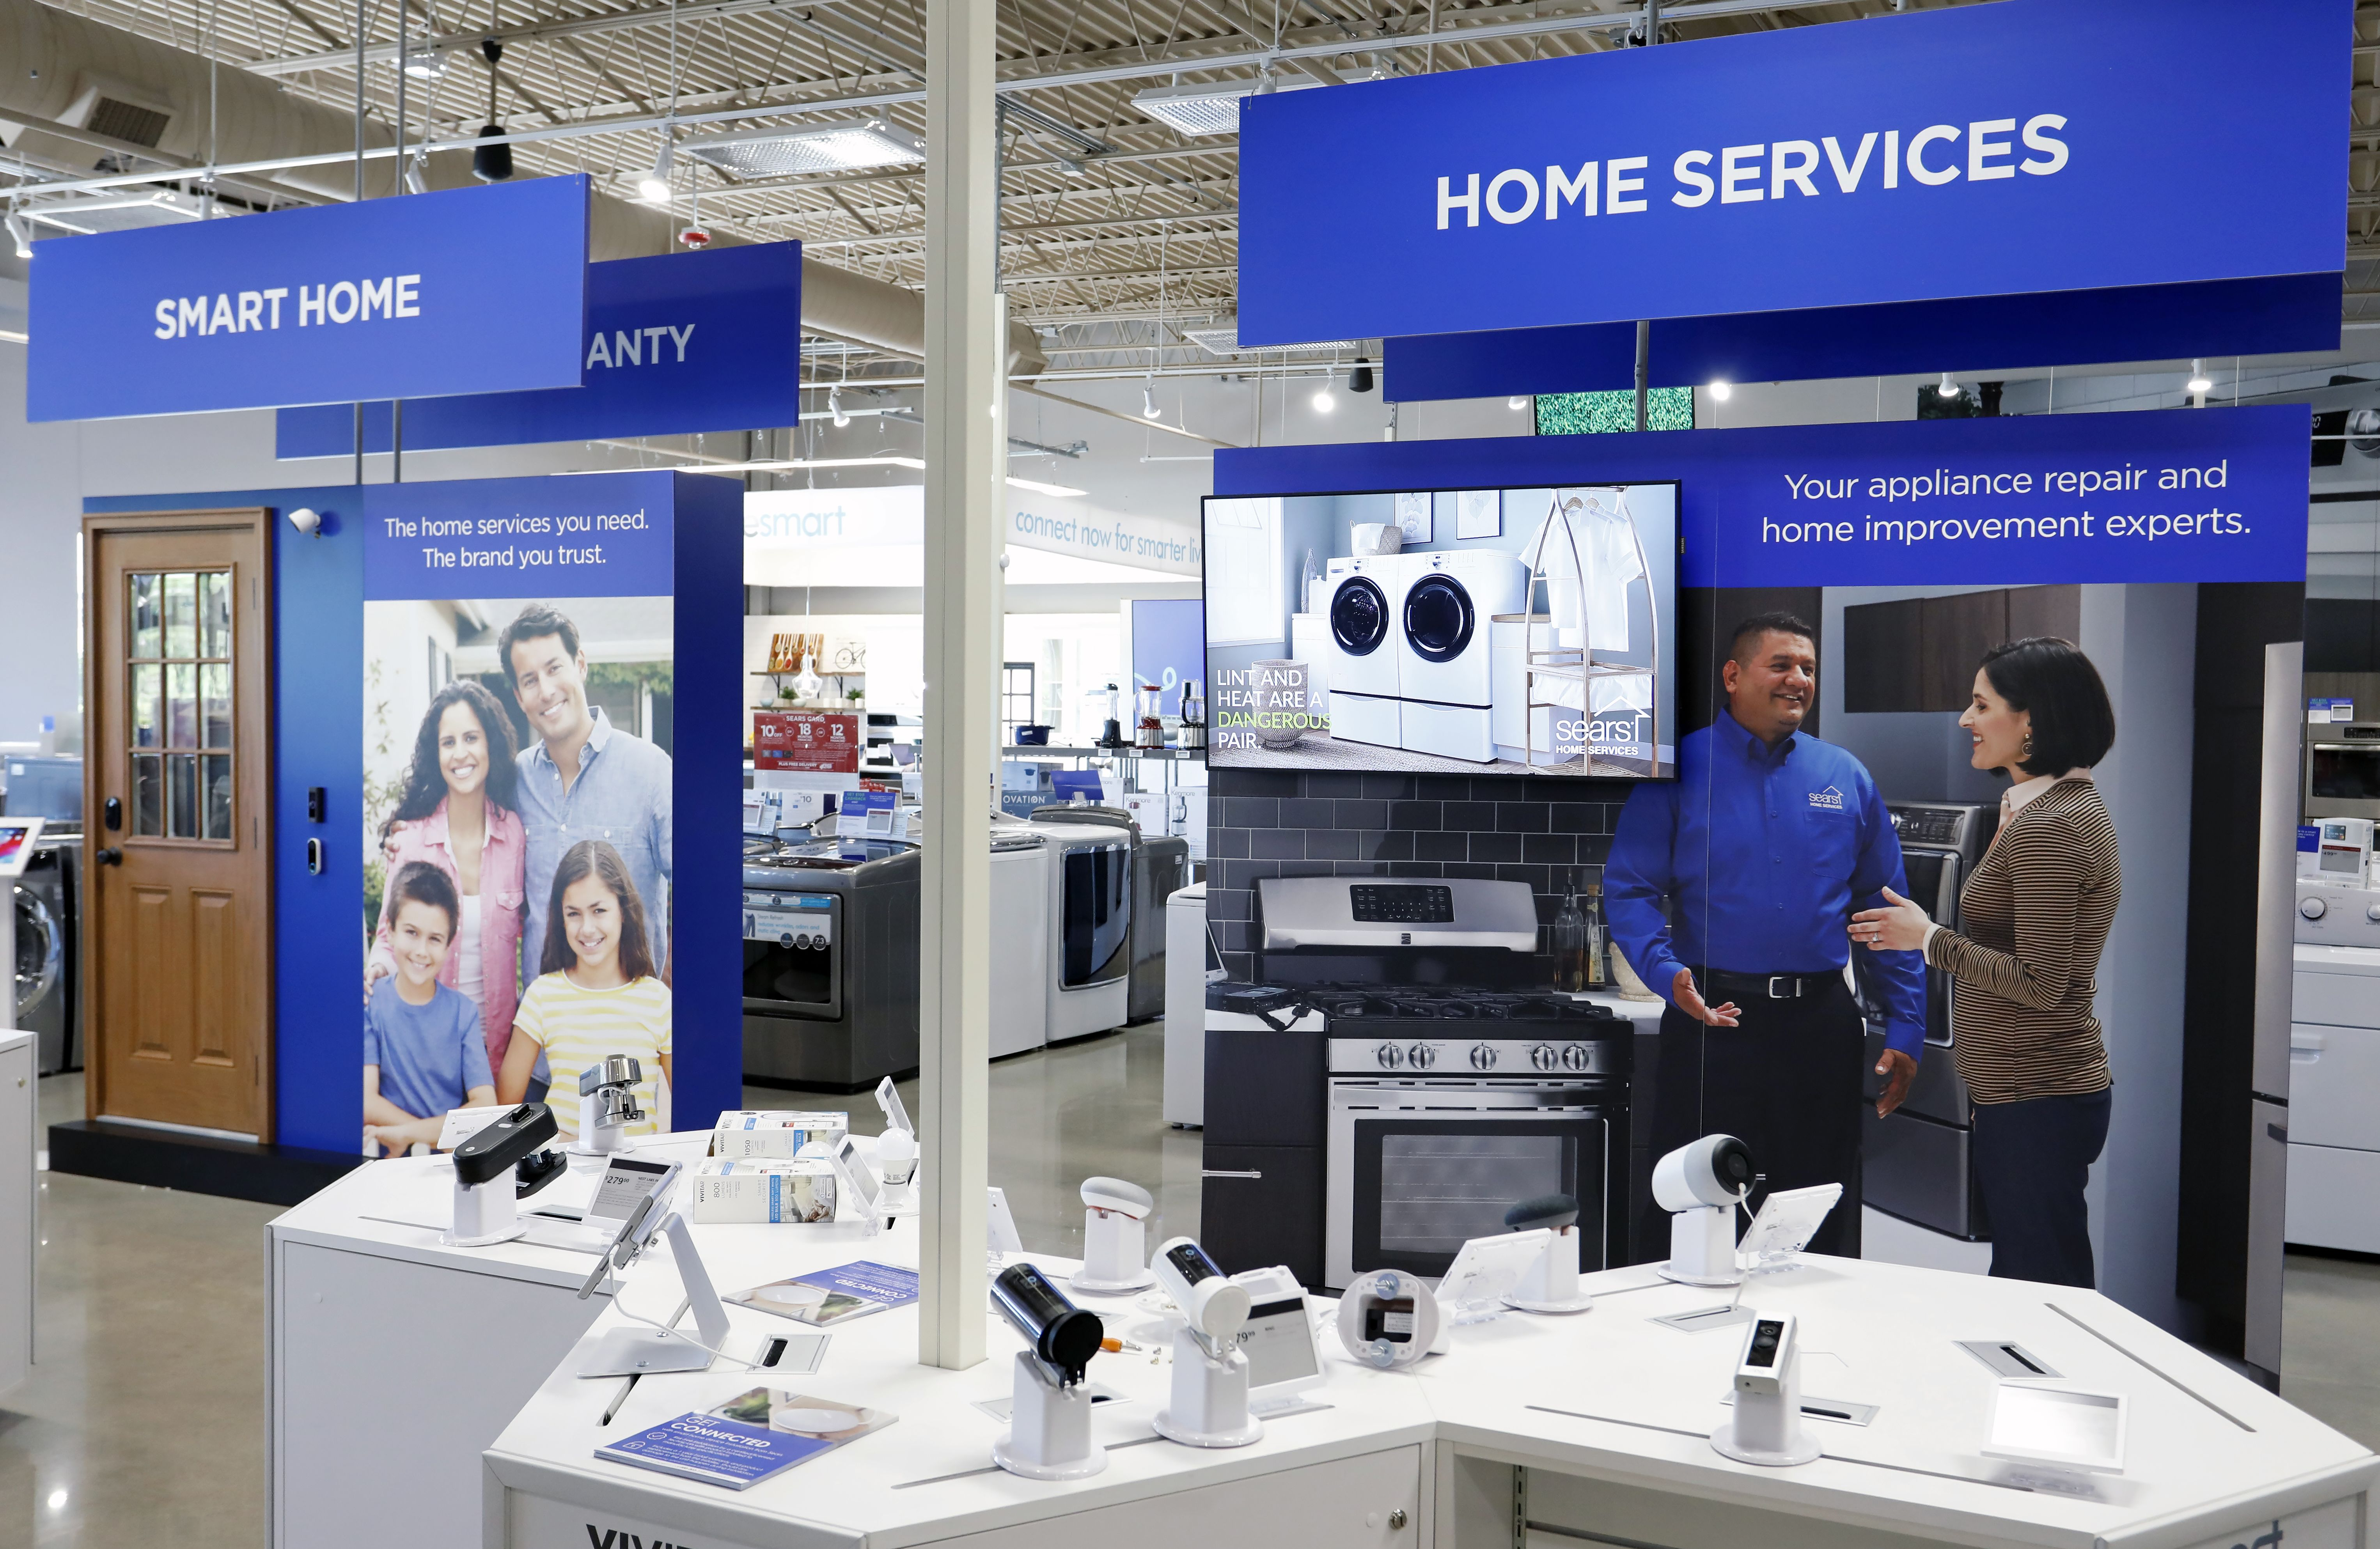 Sears just opened a new store, here's what it looks like